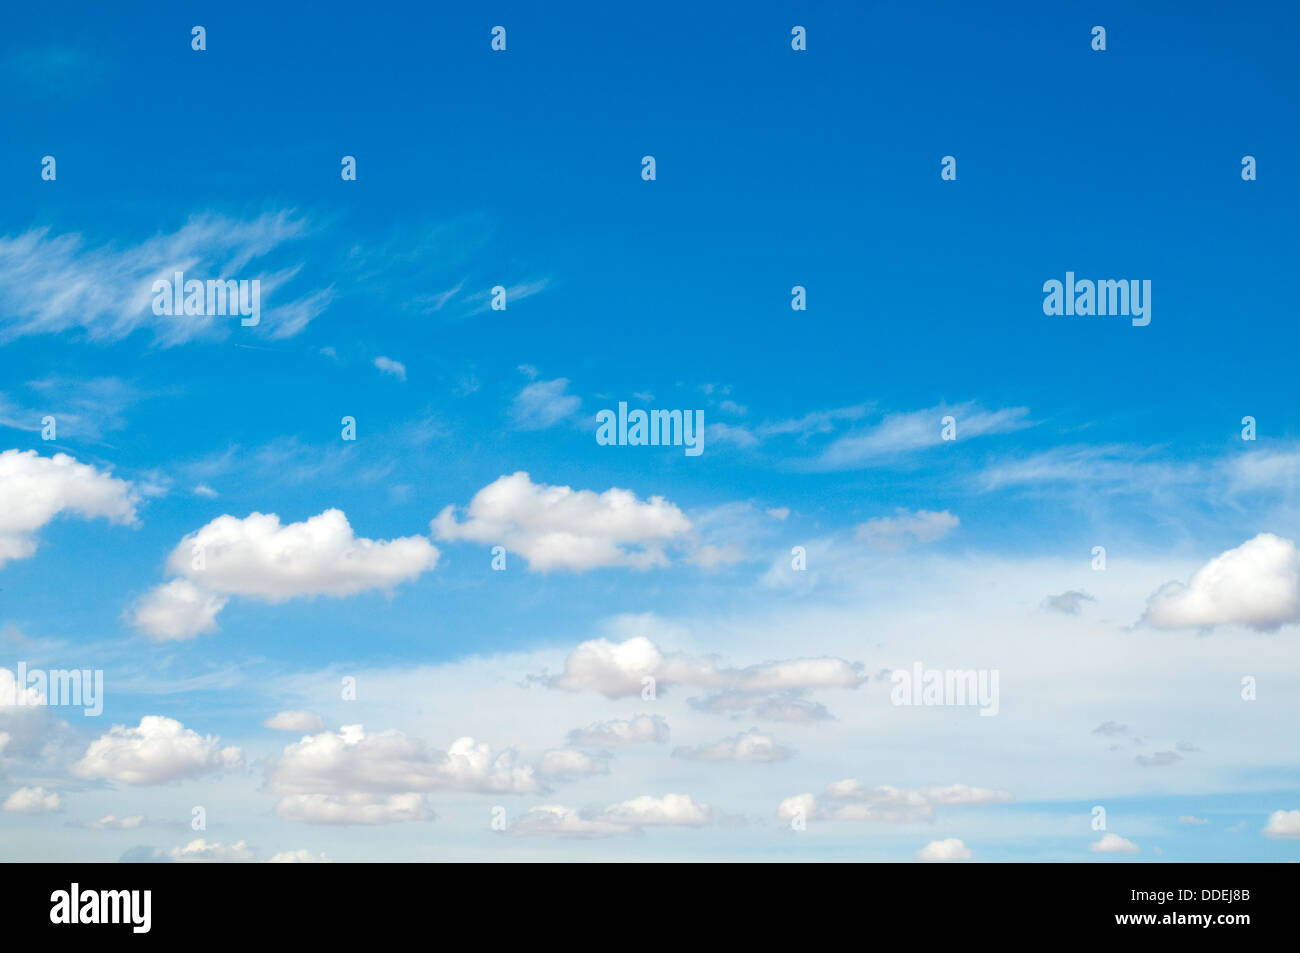 Blue sky with white clouds. - Stock Image